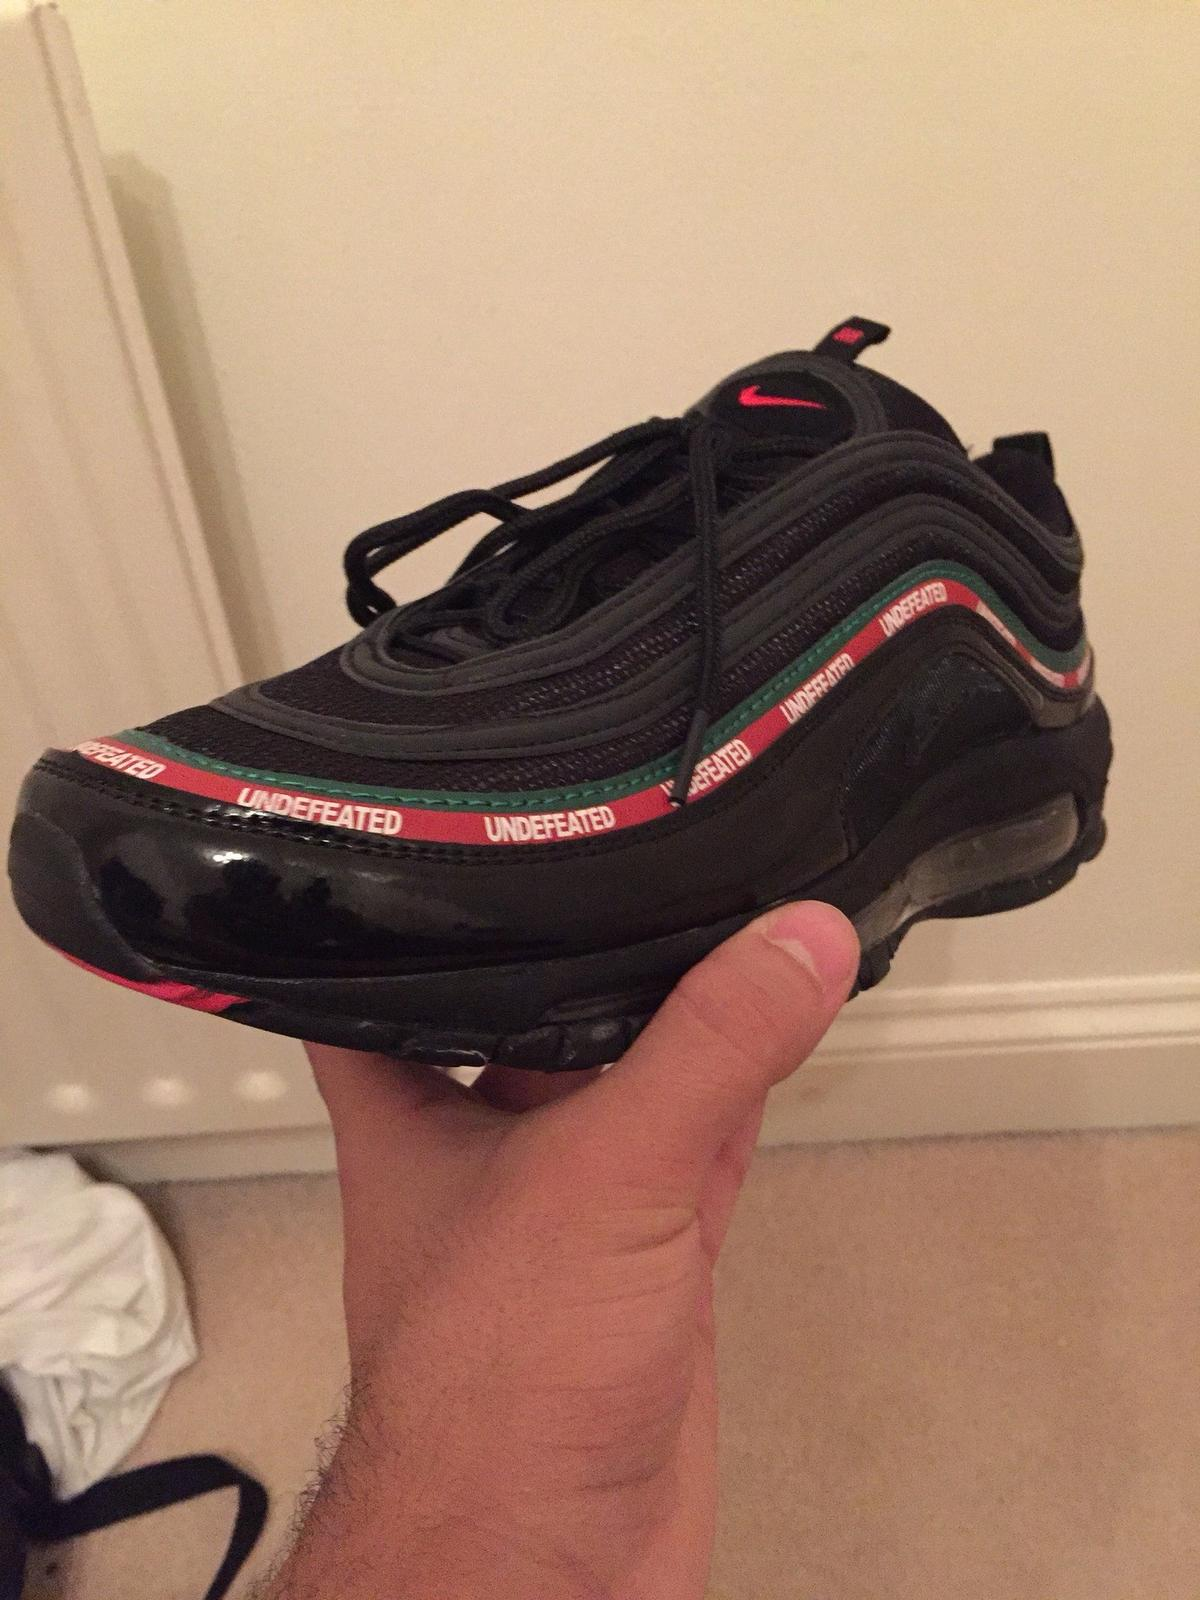 NIKE AIRMAX 97 OGUNDEFEATED UNDFTD SIZE 10 in CM16 Forest